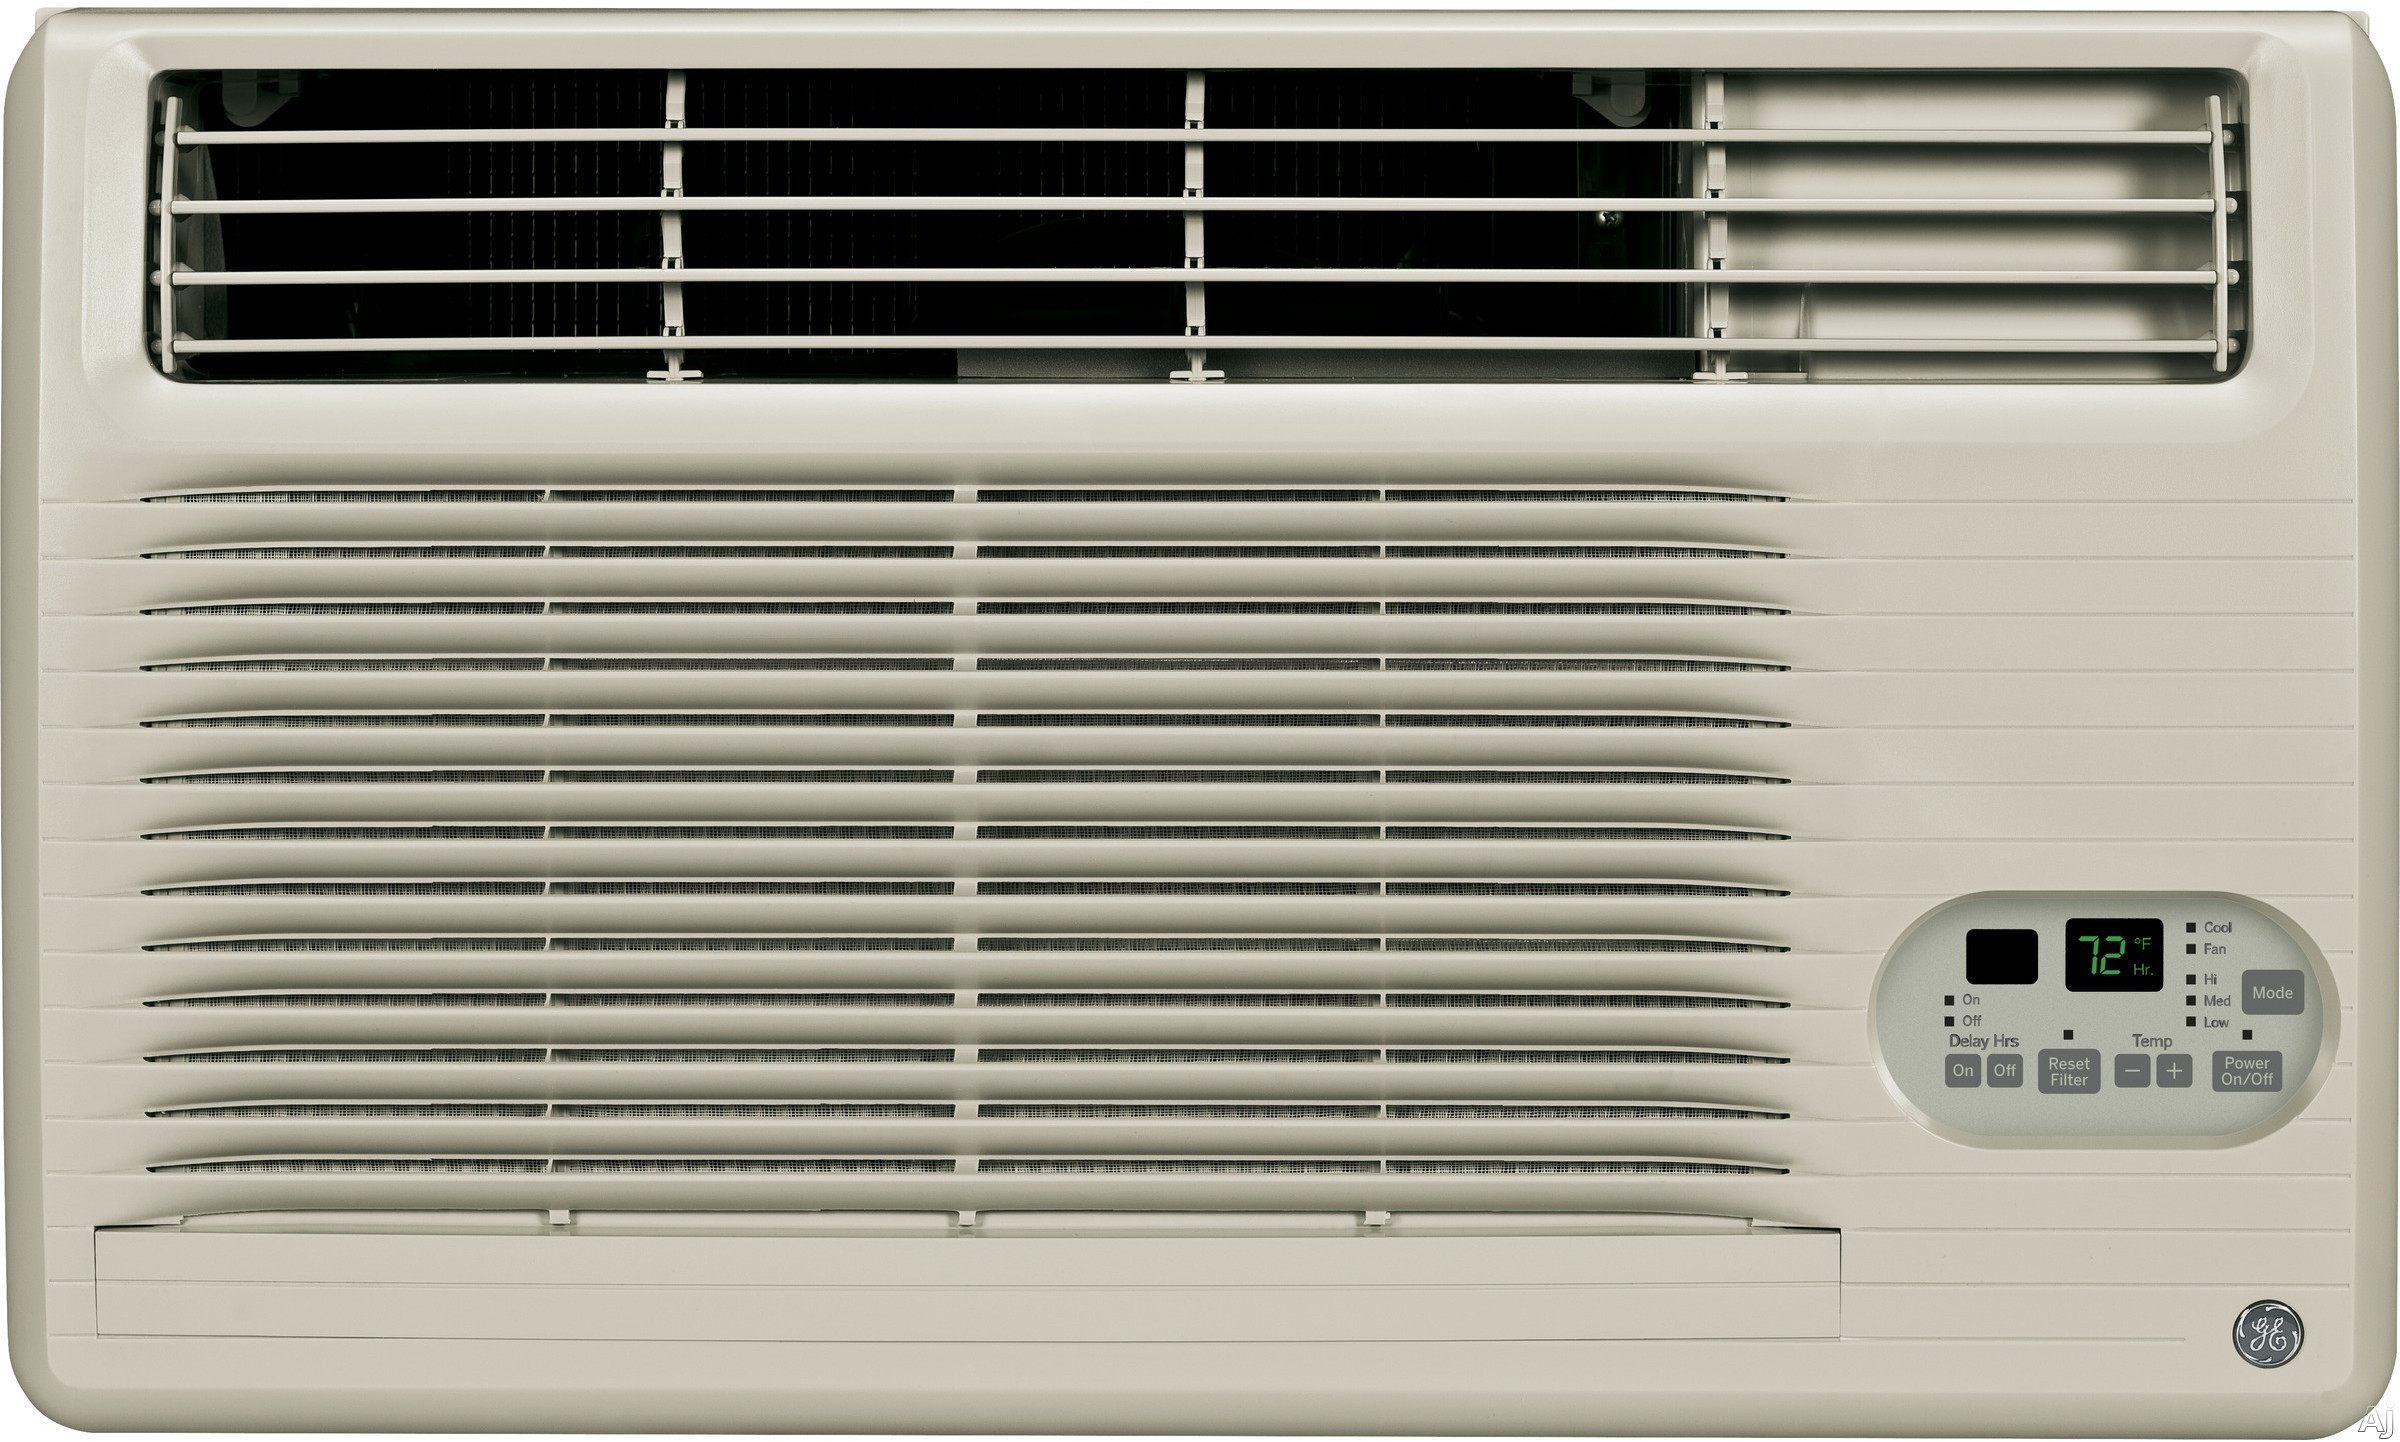 GE AJCM10ACF 10,400 BTU Thru-the-Wall Air Conditioner with 9.8 EER, R-410A Refrigerant, 2.7 Pts/Hr Dehumidification, Energy Saver, Electronic Controls, ADA Compliant, ENERGY STAR and Remote Control AJCM10ACF